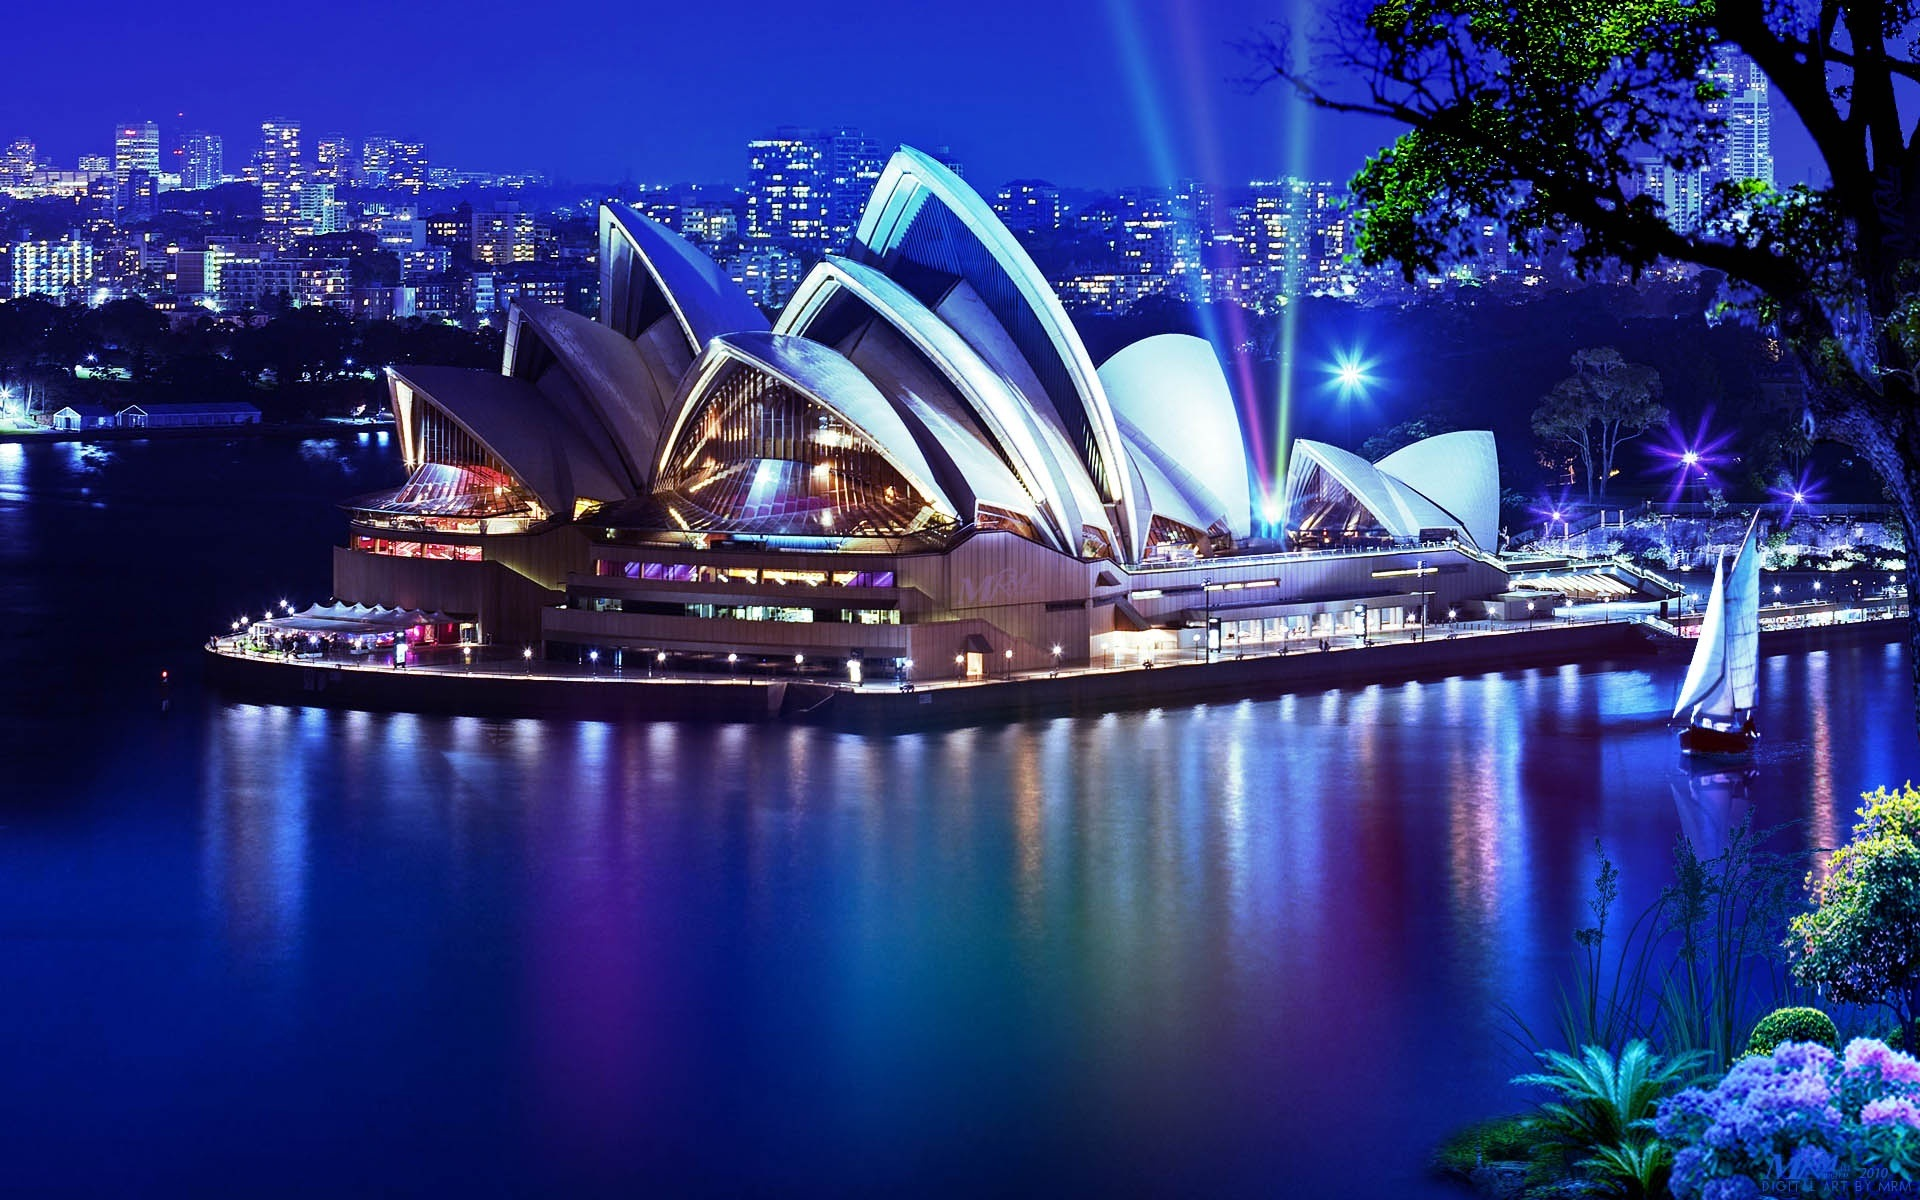 Sydney Opera House High Definition Wallpaper   Travel HD Wallpapers 1920x1200